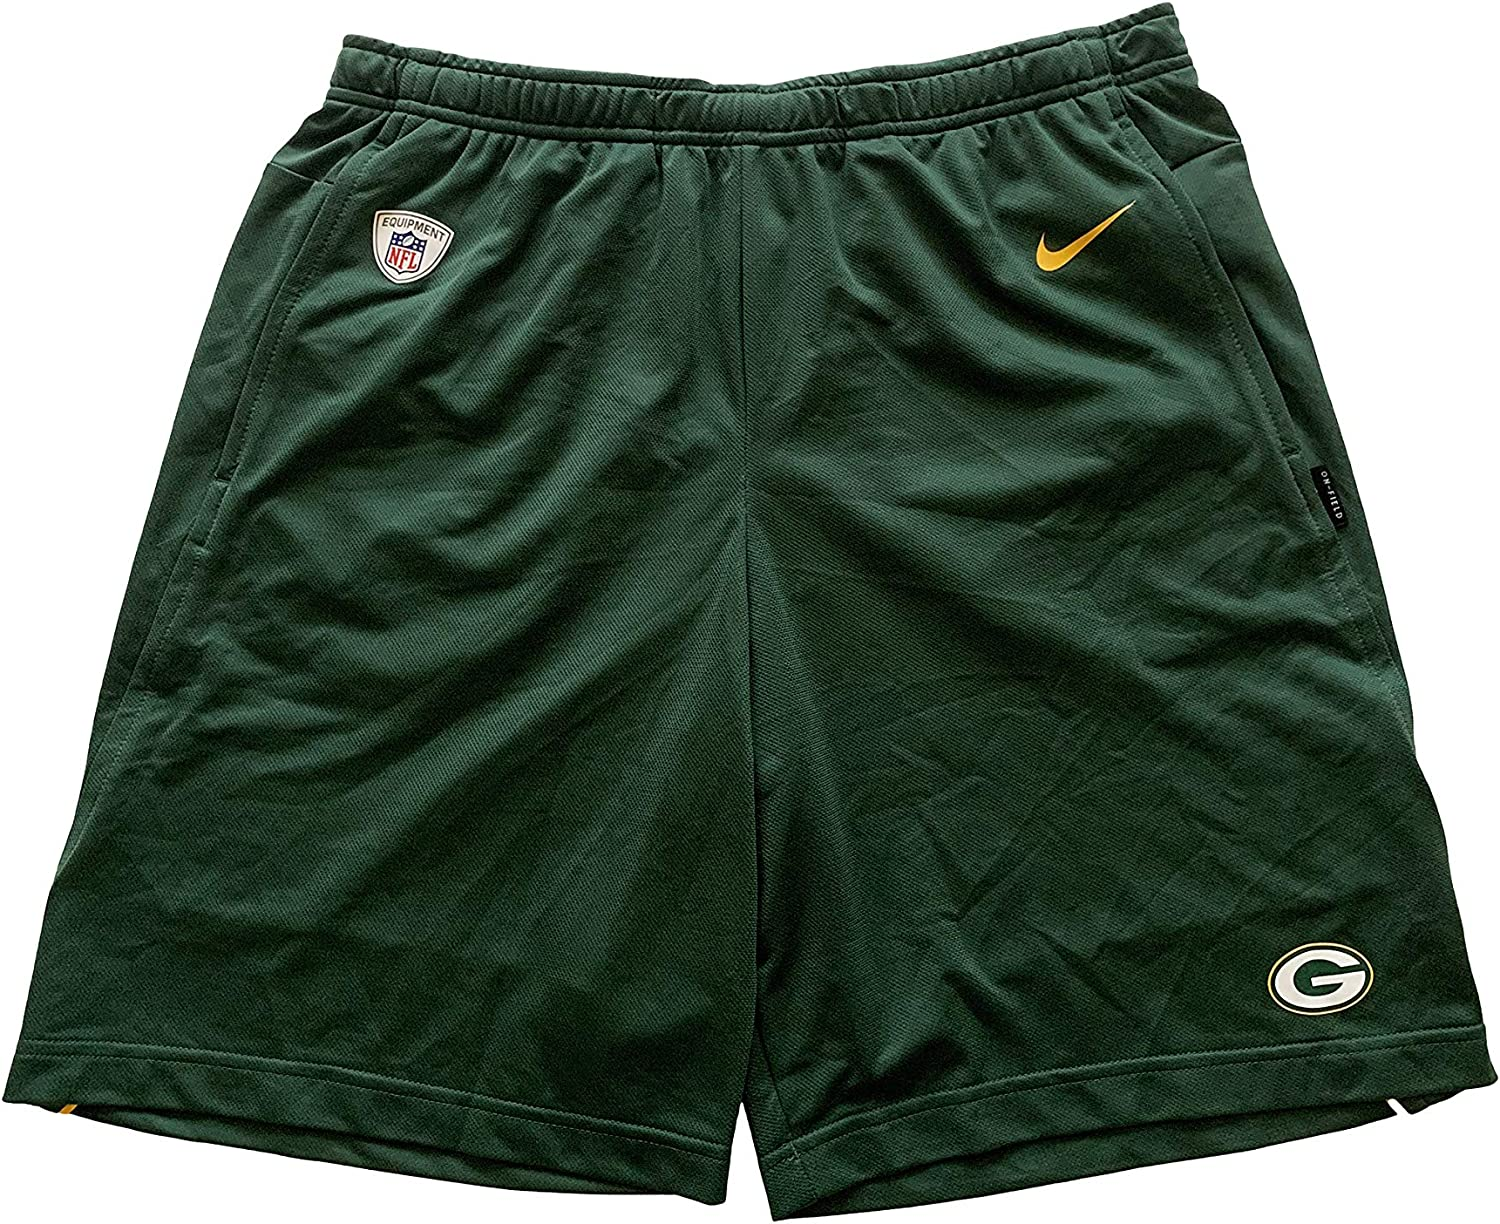 Nike Green Bay Packers NFL On Field Official Shorts Dri-Fit